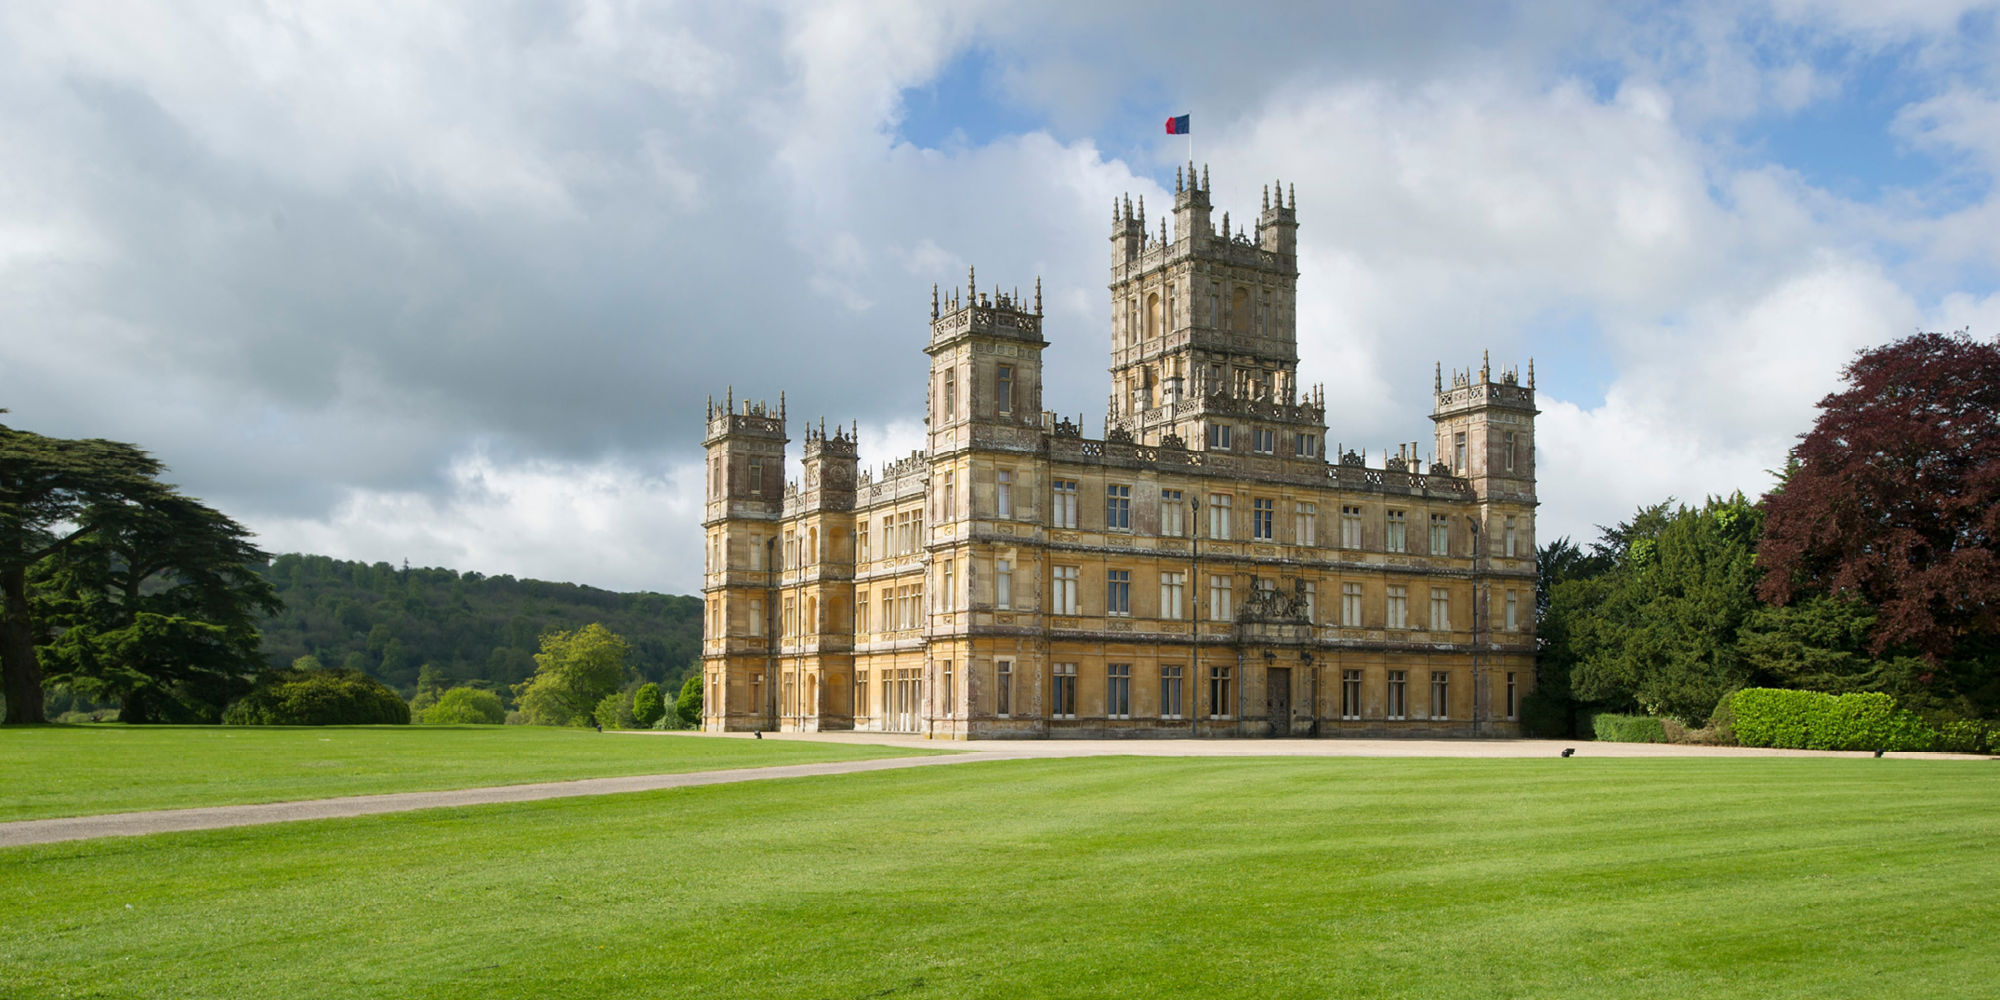 Transcendent Travel is offering a one-week tour taking people to UK film sets, with the trip priced at $6,495 (£4,883). The itinerary includes a visit to Highclere Castle in Hampshire, the set of Downton Abbey.